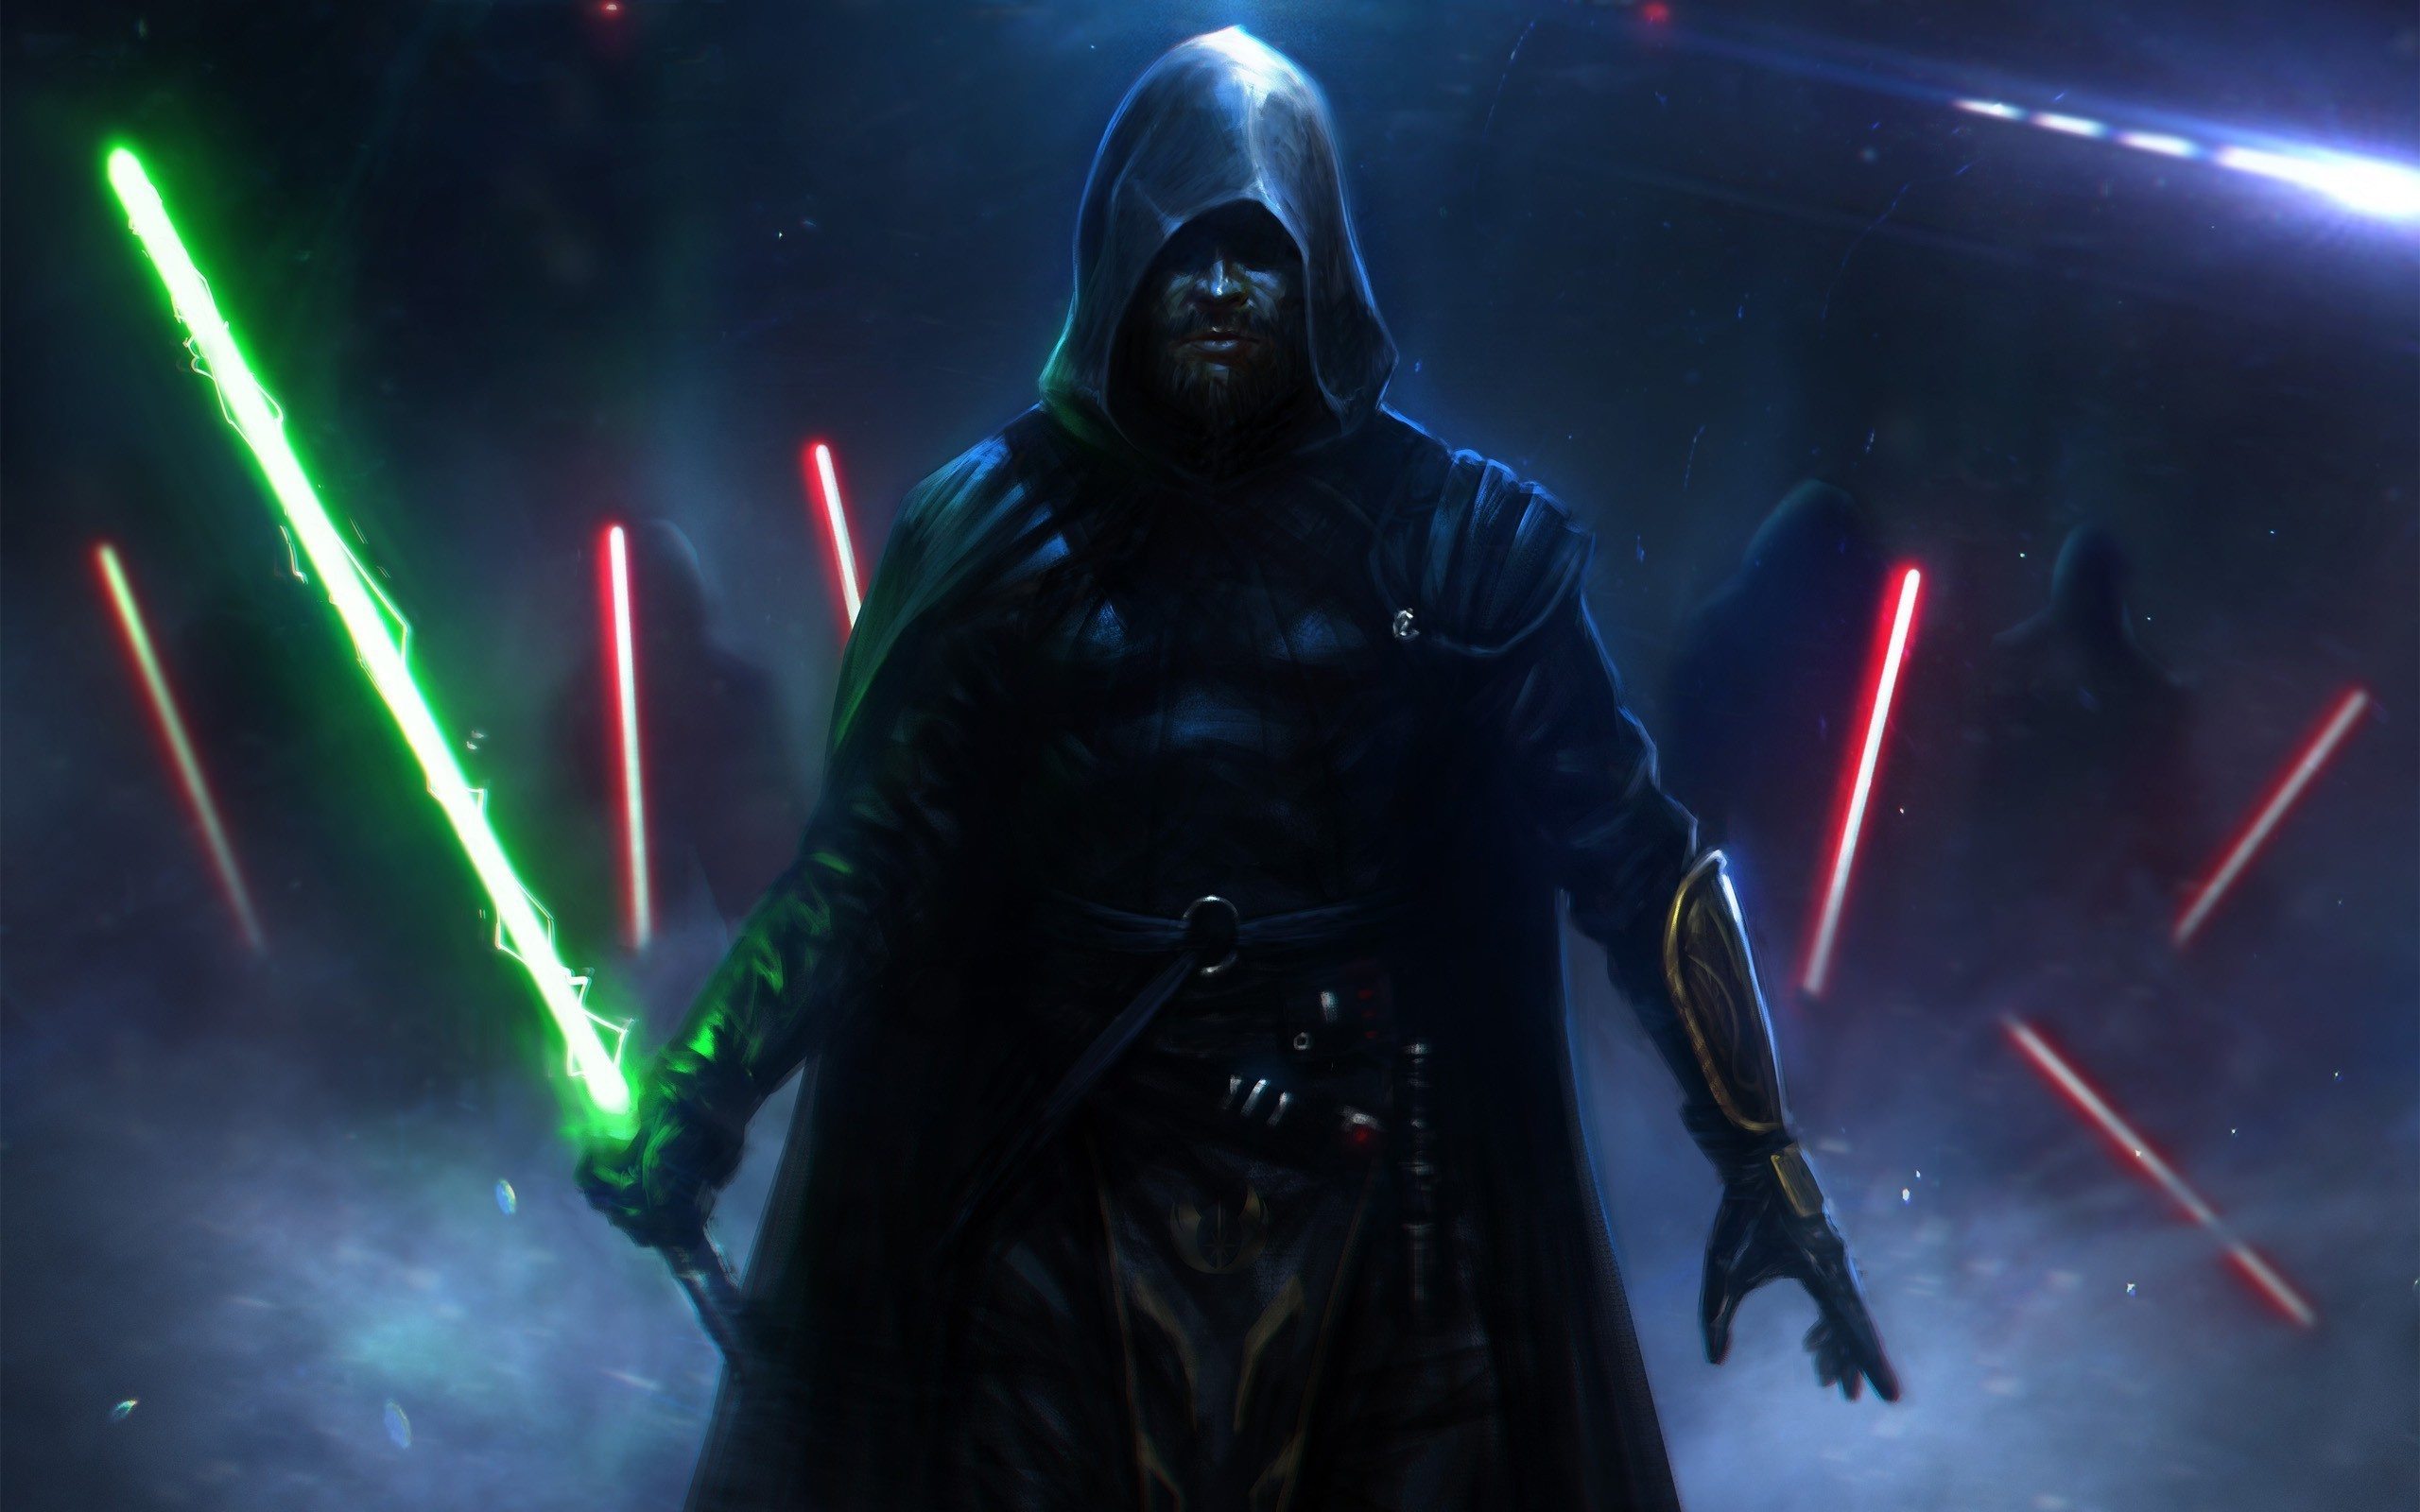 2560x1600 star wars wallpaper HD jedi – HD WALLPAPER WIDE